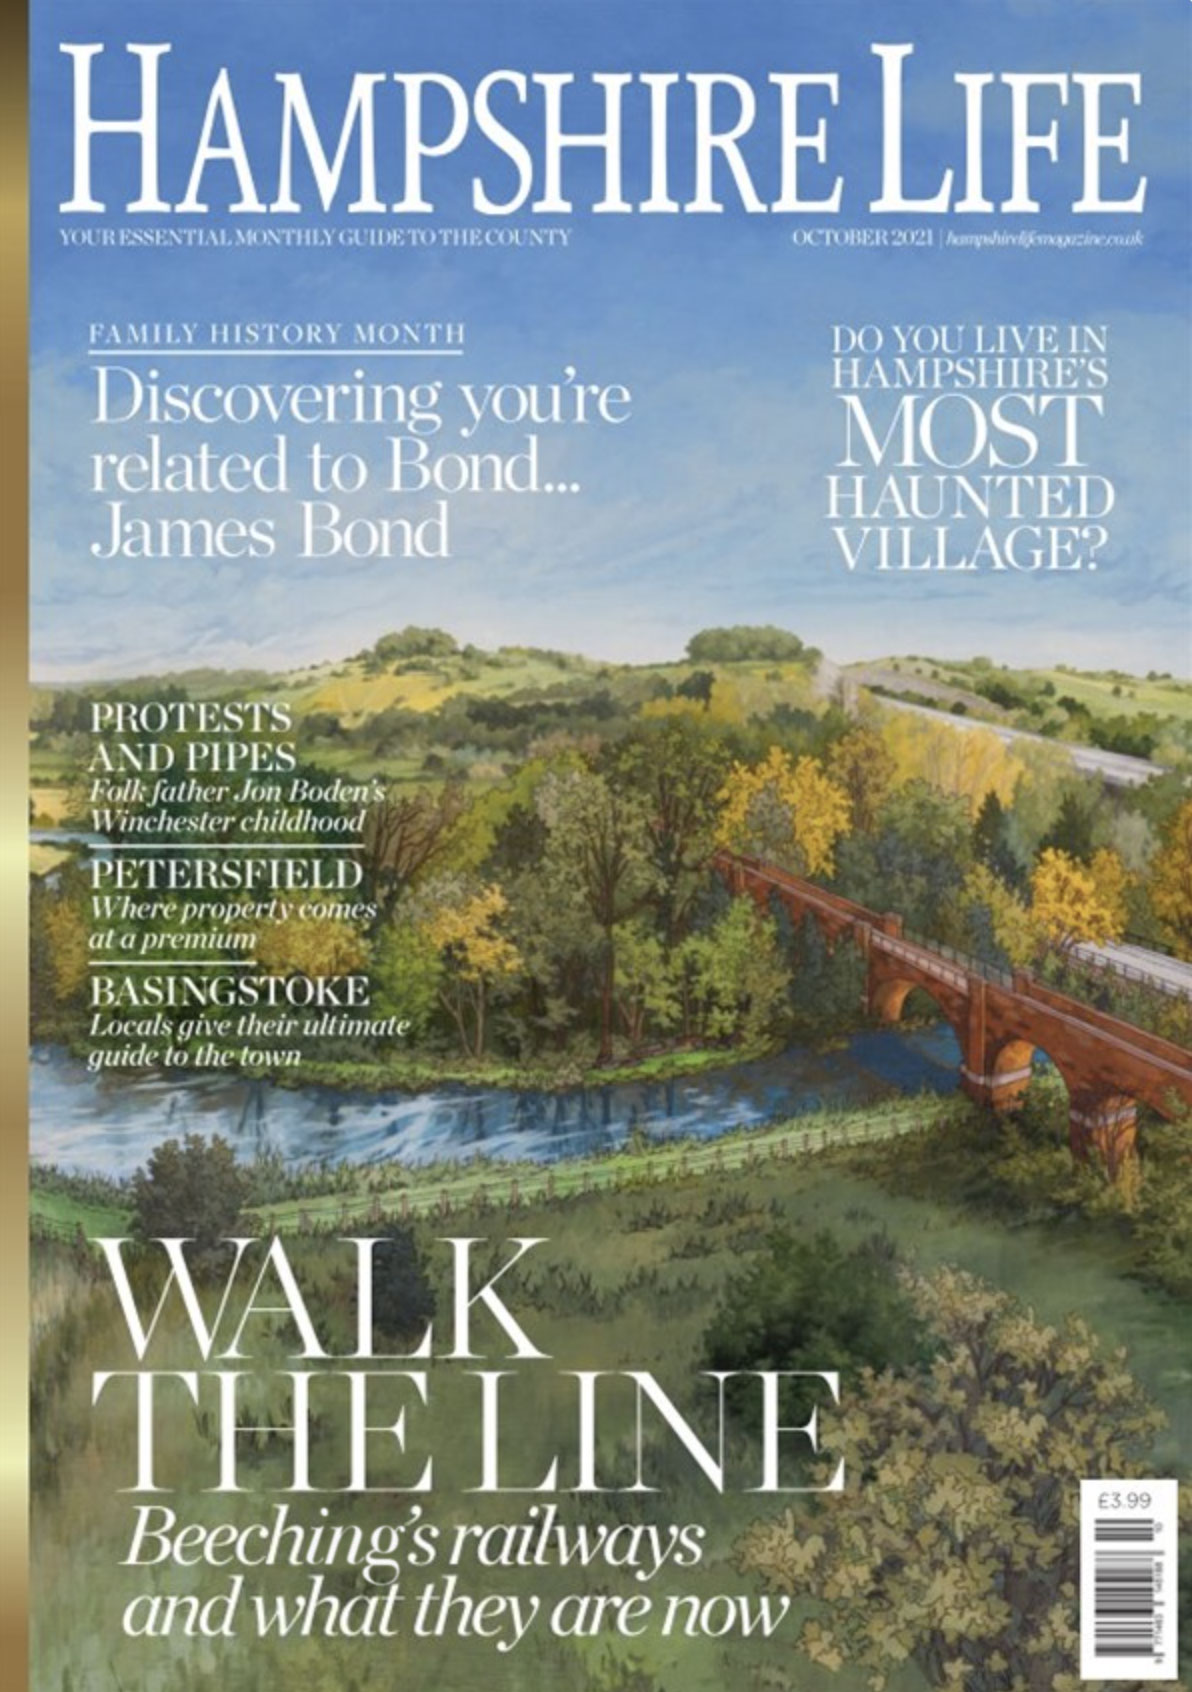 Hampshire Life Cover Featuring Illustration by Jonathan Chapman